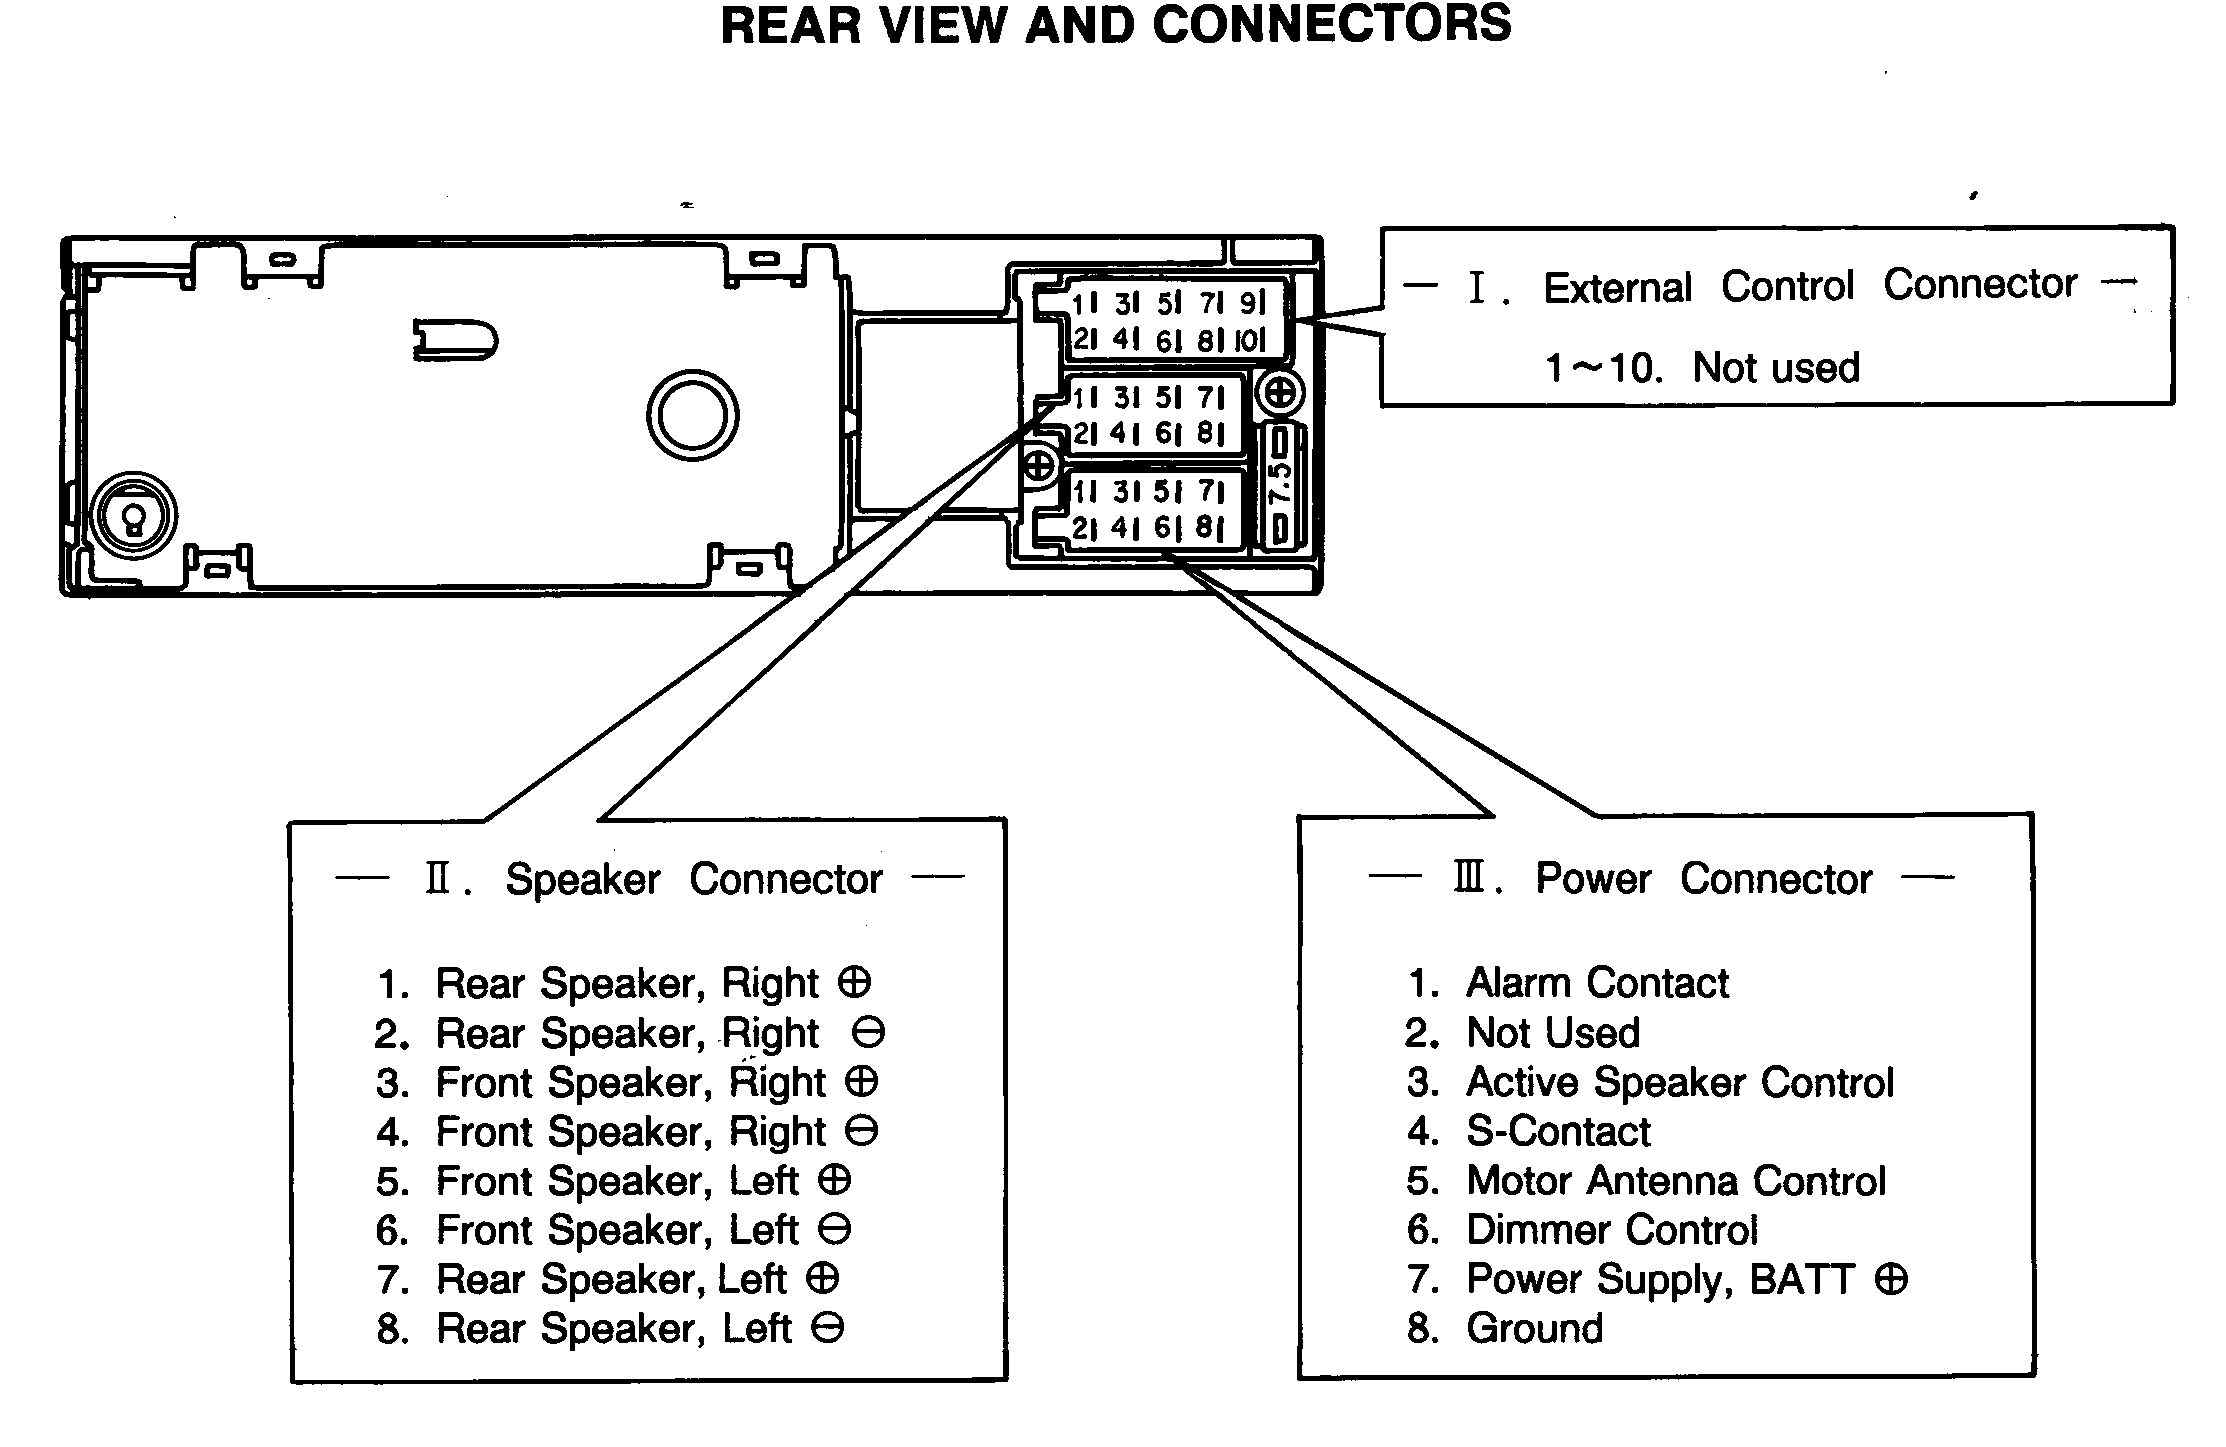 WireHarnessVW121401 vw mk4 radio wiring diagram 2011 jetta radio diagram \u2022 wiring Mercedes E320 Wiring-Diagram Firewall at crackthecode.co